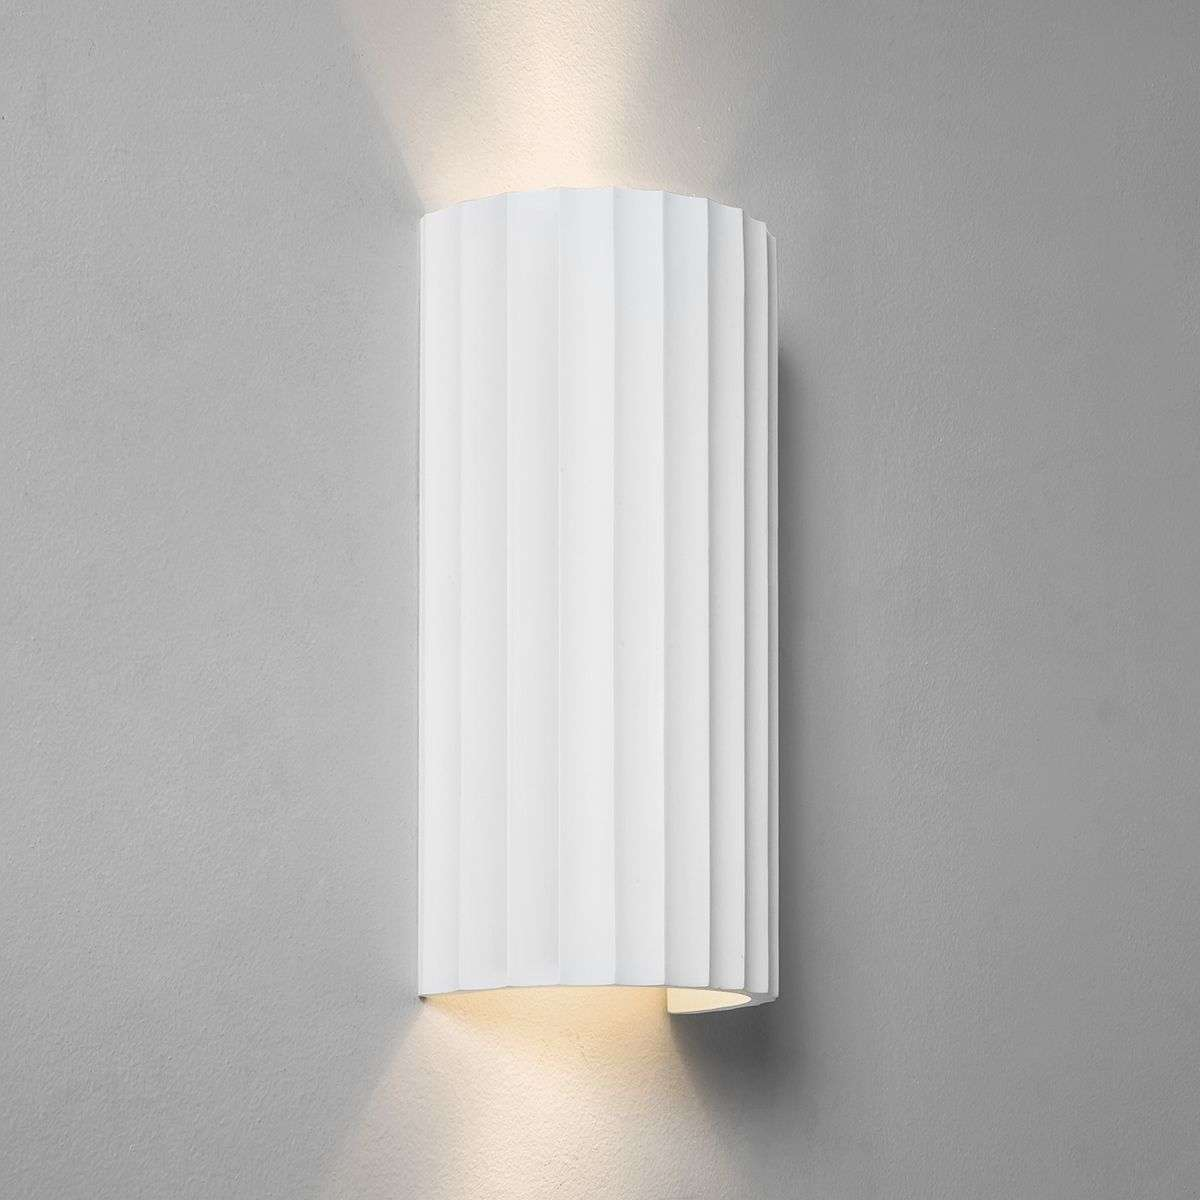 Kymi 300 Wall Light Plaster-1020503-33